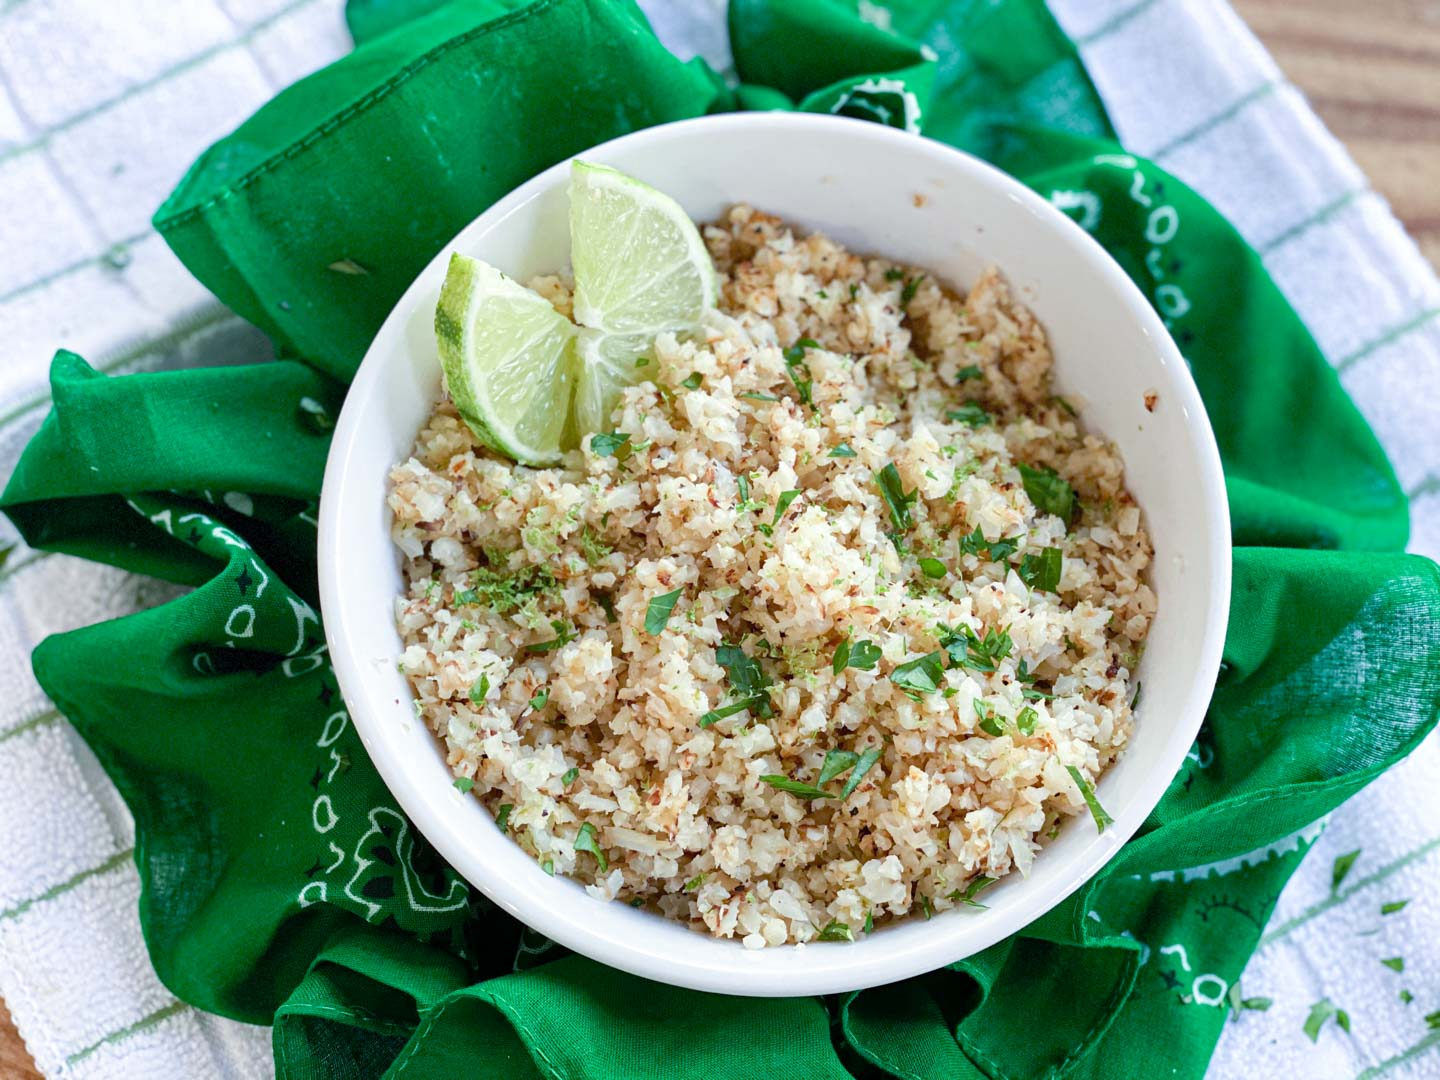 Cauliflower rice in a white bowl with a green napkin.